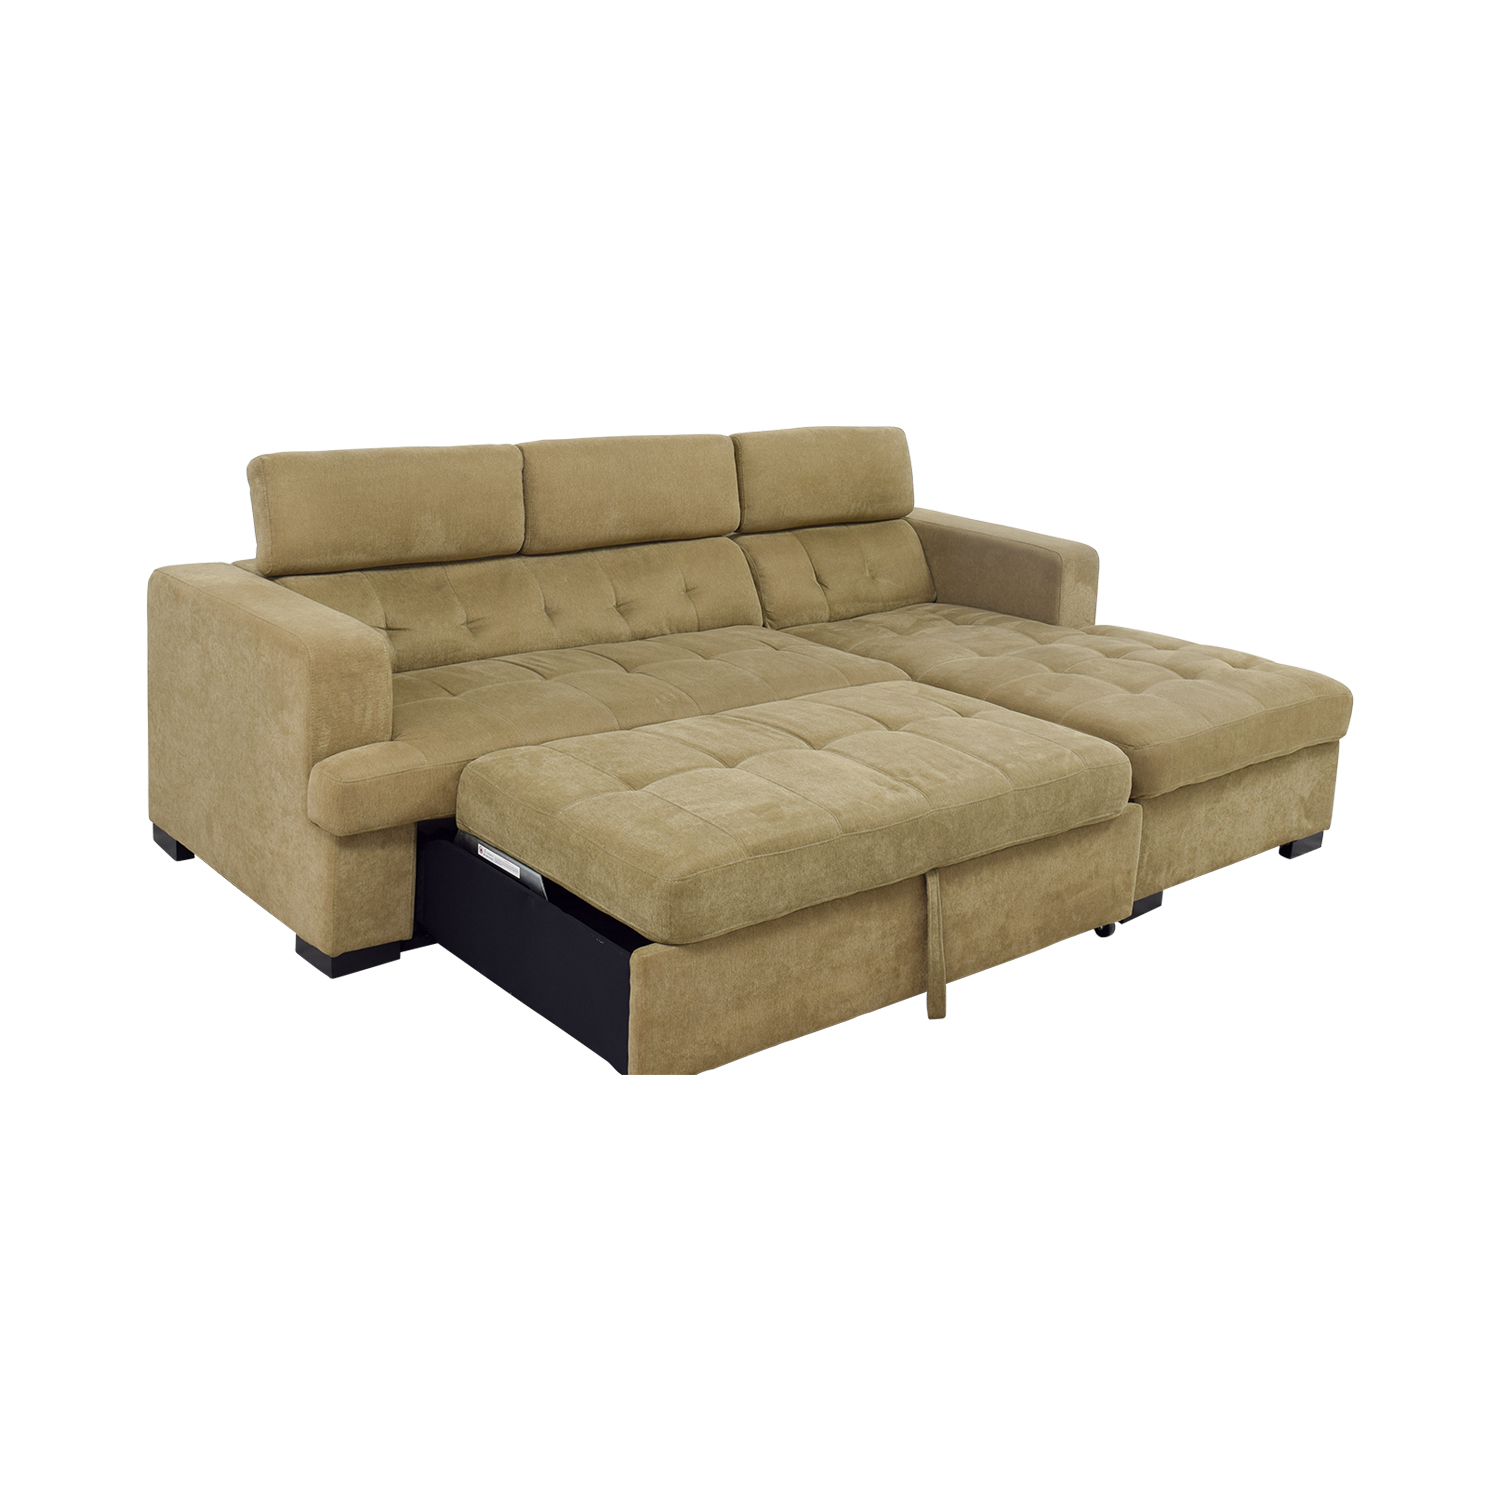 bobs furniture sleeper sofa chair singapore 59 off bob 39s gold chaise